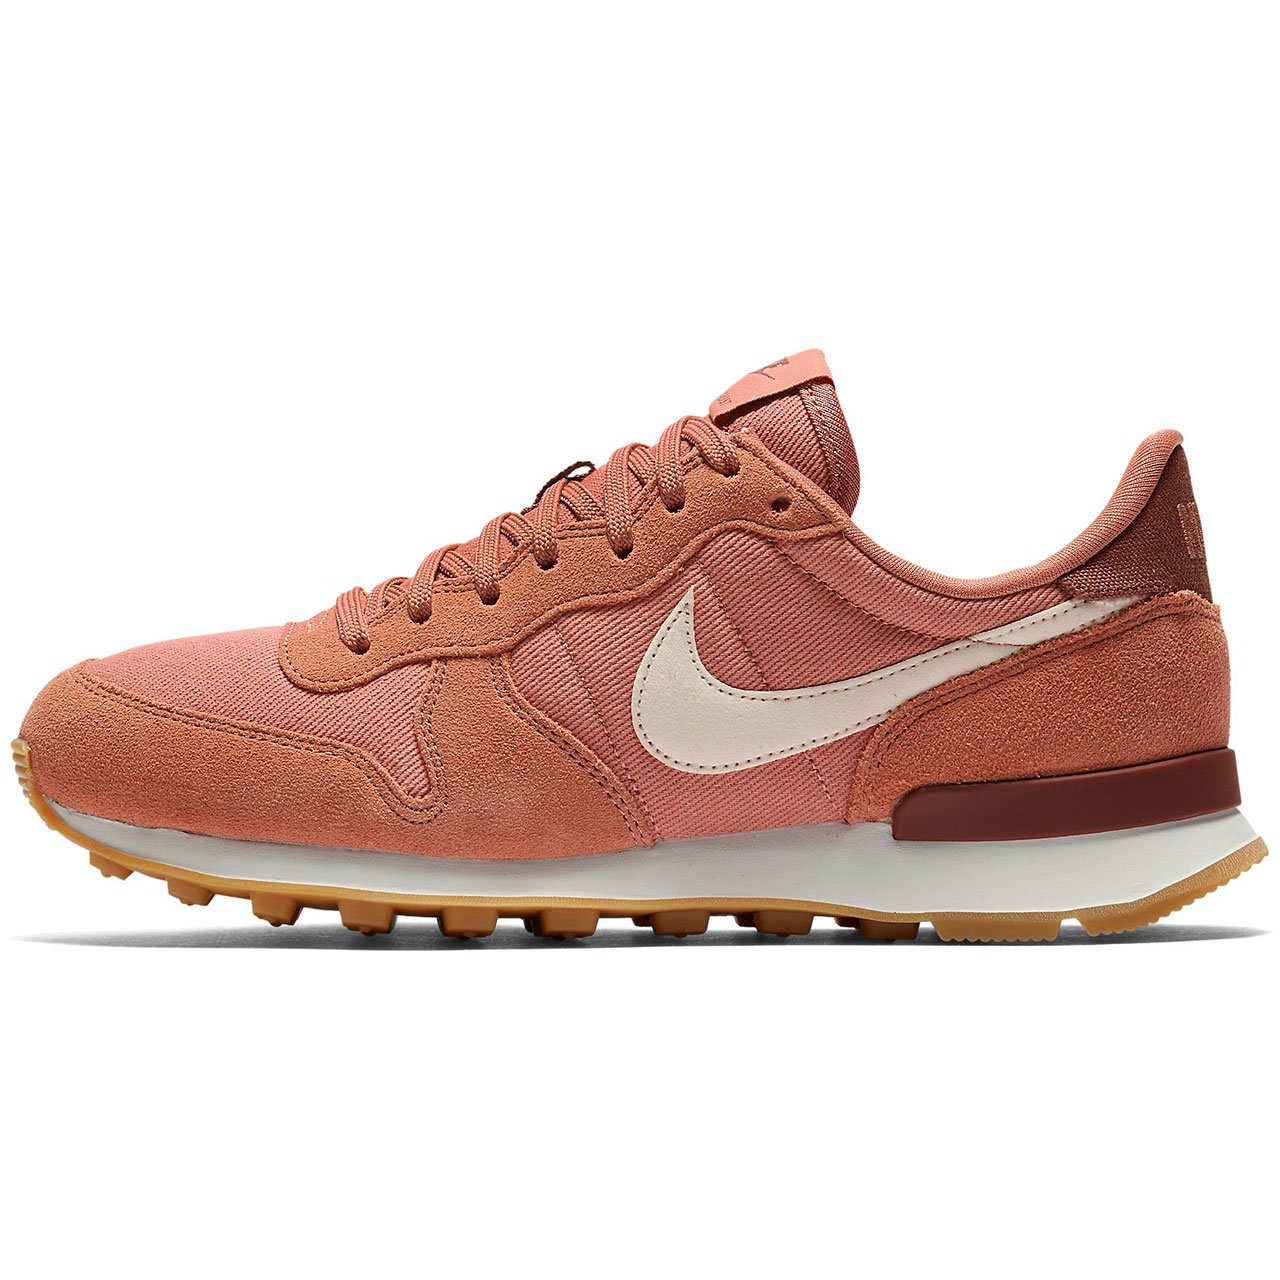 NIKE WMNS Internationalist, Chaussures de Gymnastique Femme 36 EU|Multicolore EU|Multicolore EU|Multicolore (Terra Blush/Guava Ice/Summit White 210) fedbfa